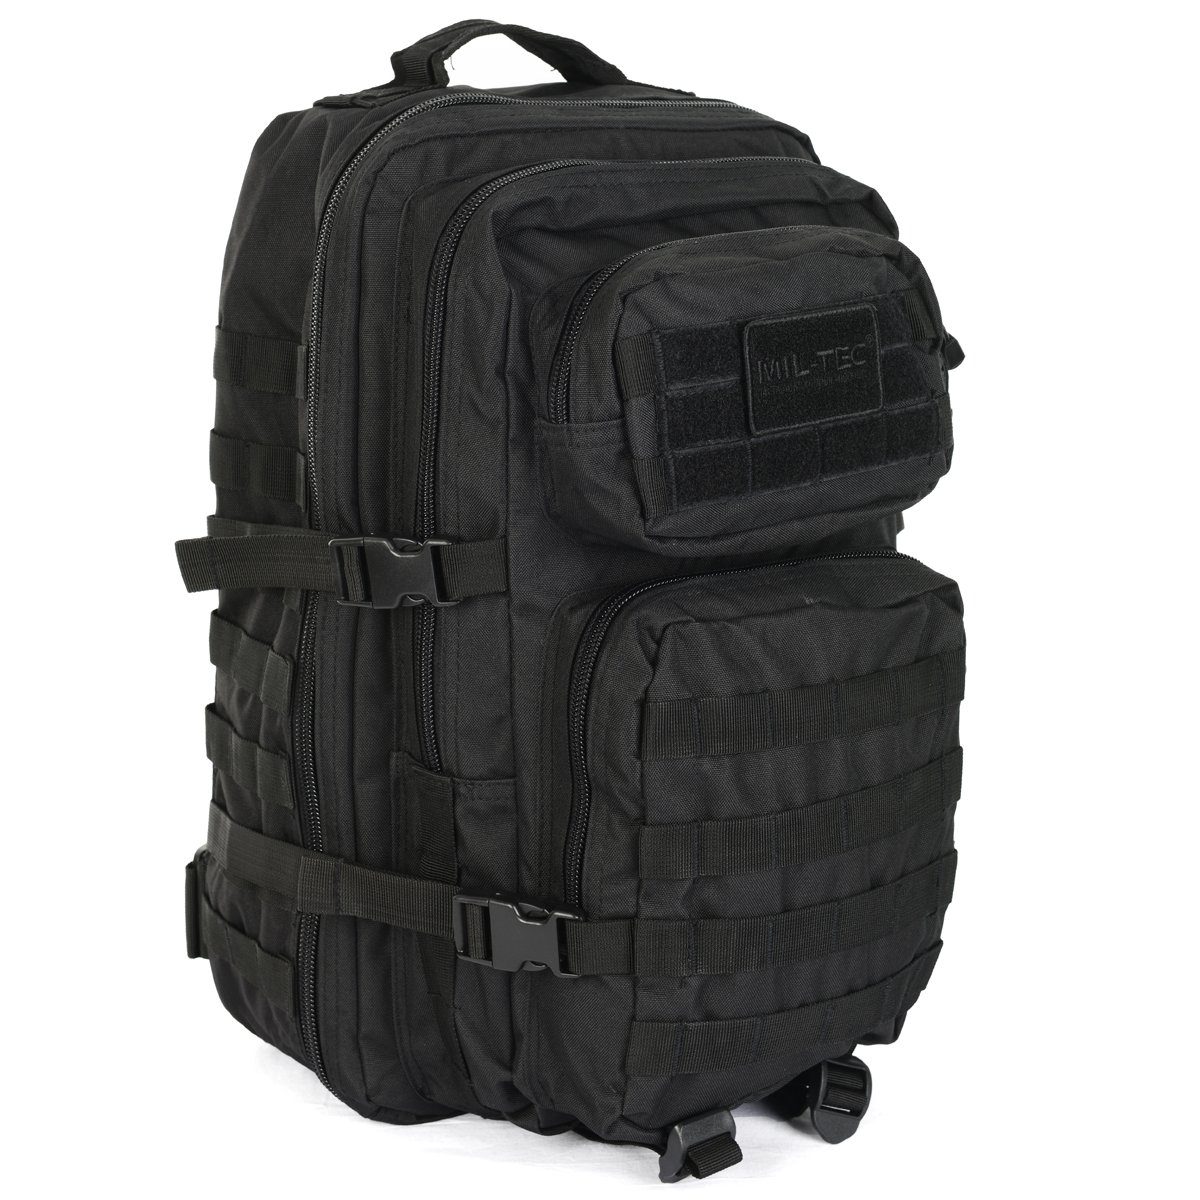 32bbde9aa2 Mil-Tec MOLLE Tactical Assault Backpack - Large 36 Litre (Black)   Amazon.co.uk  Sports   Outdoors